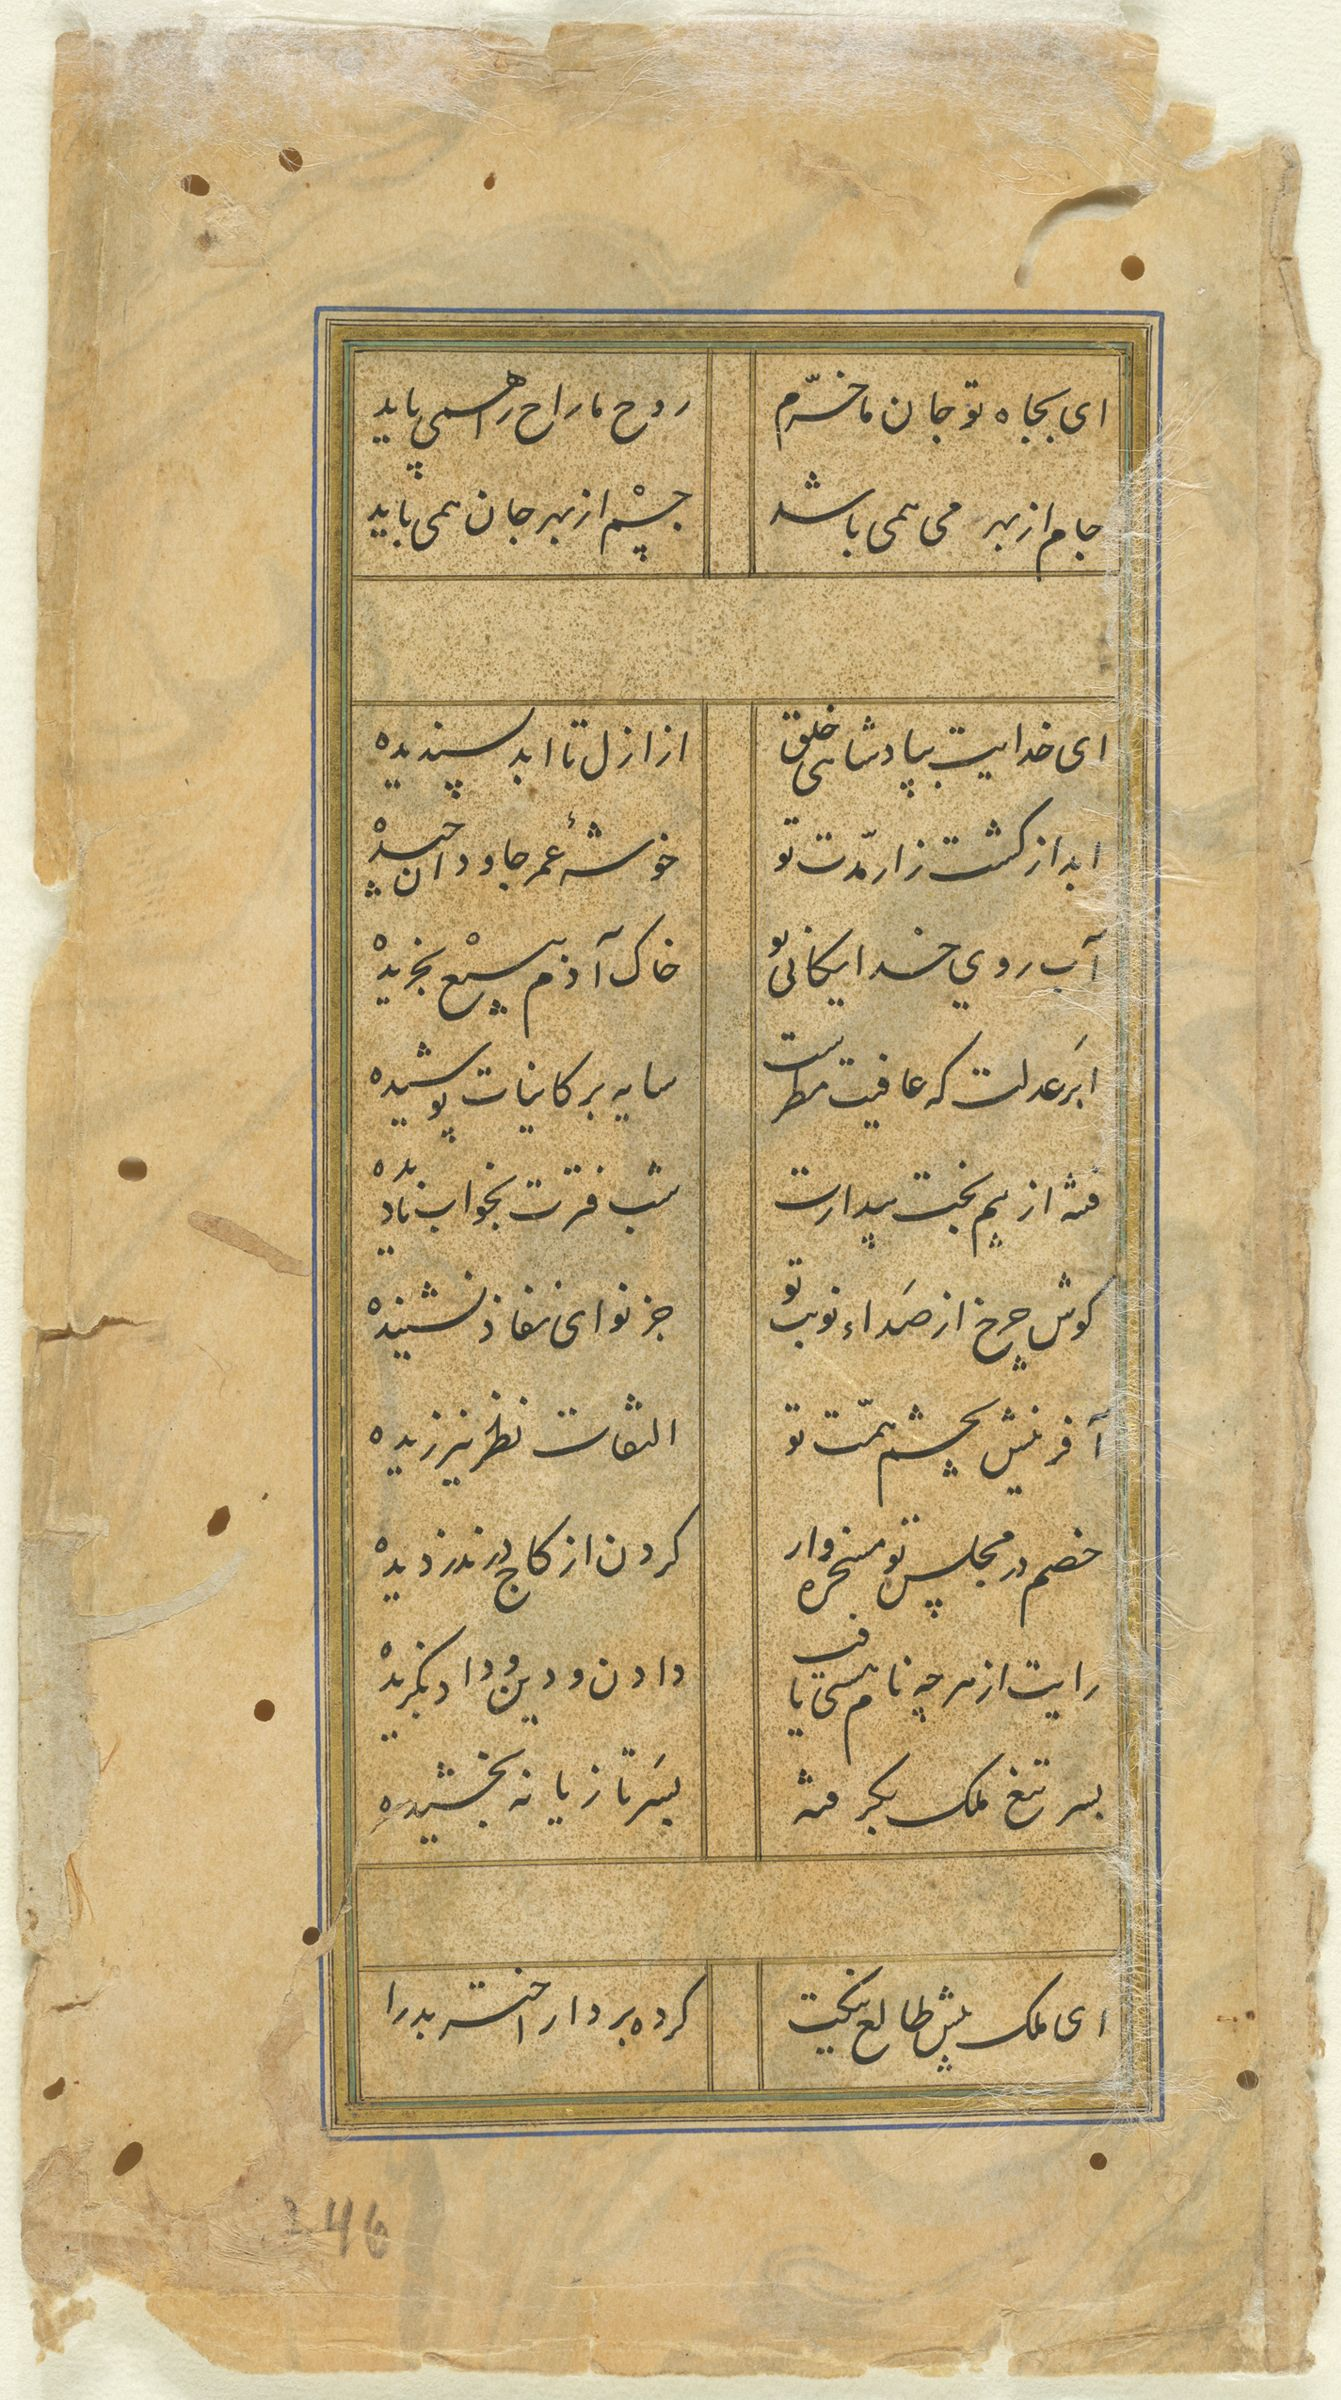 Folio 246 (Text, Recto And Verso), From A Manuscript Of The Divan Of Anvari